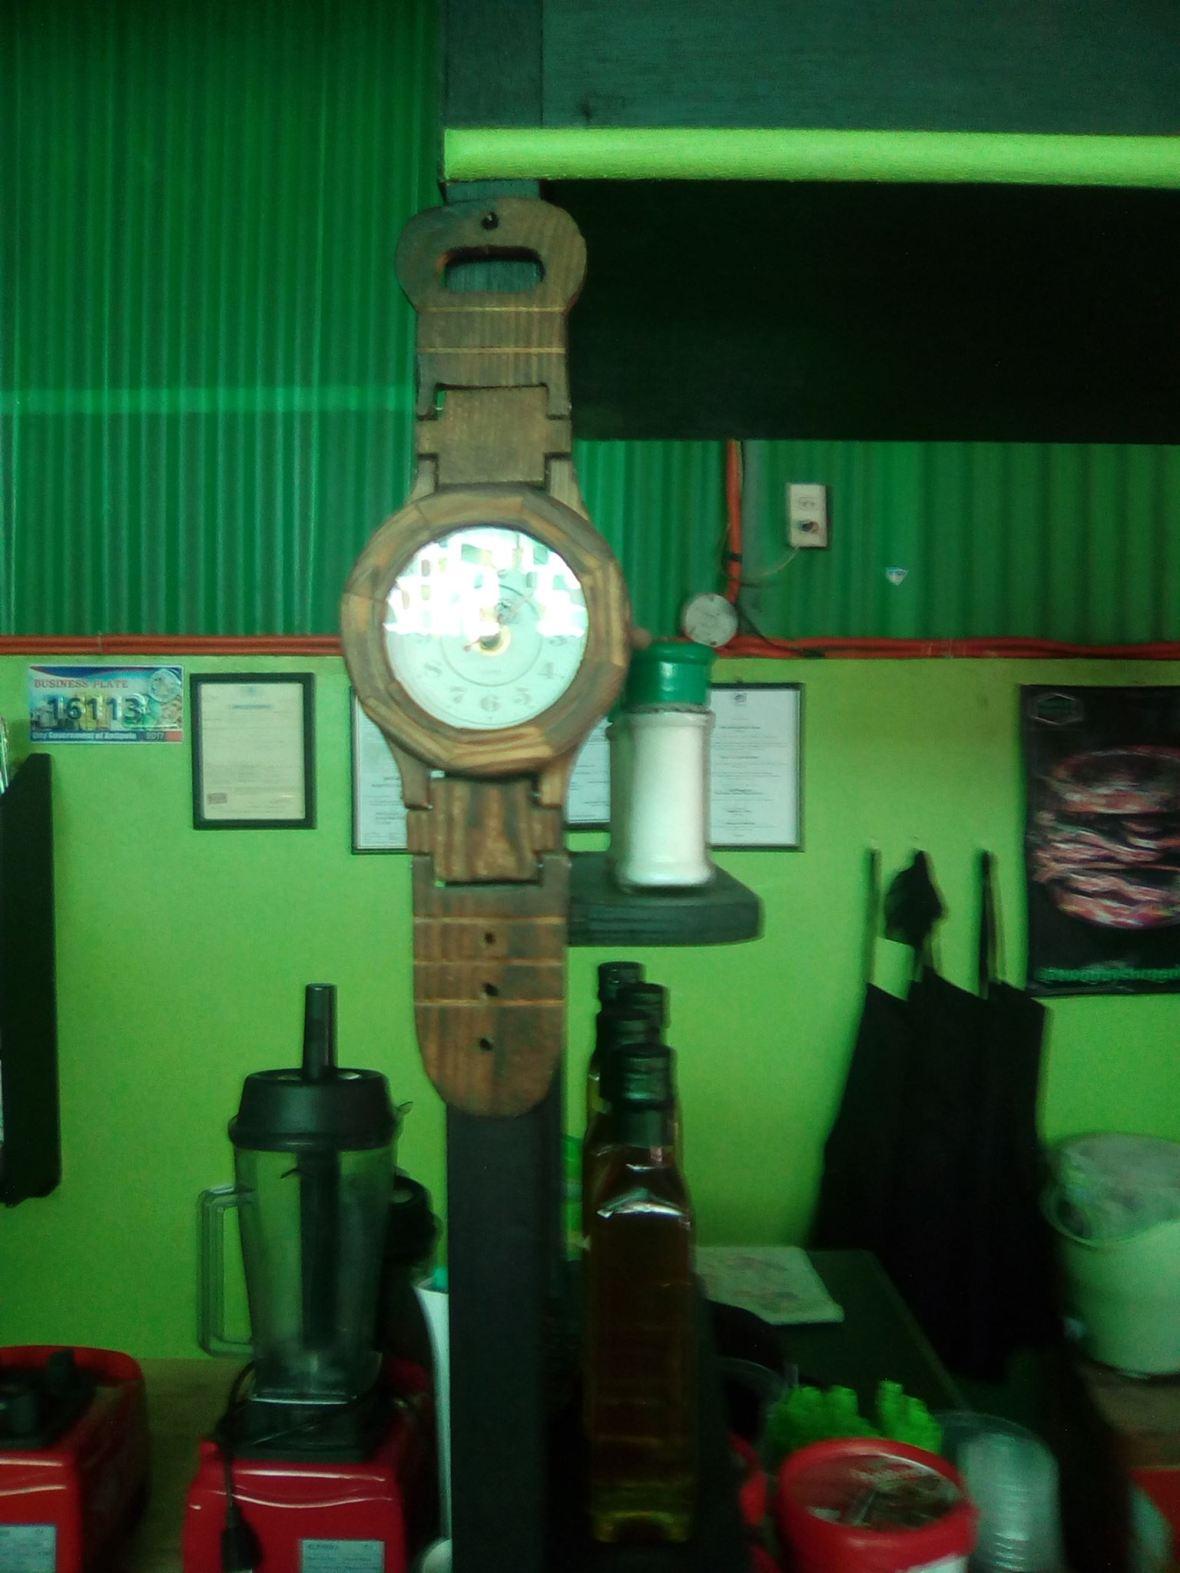 wooden clock at the counter